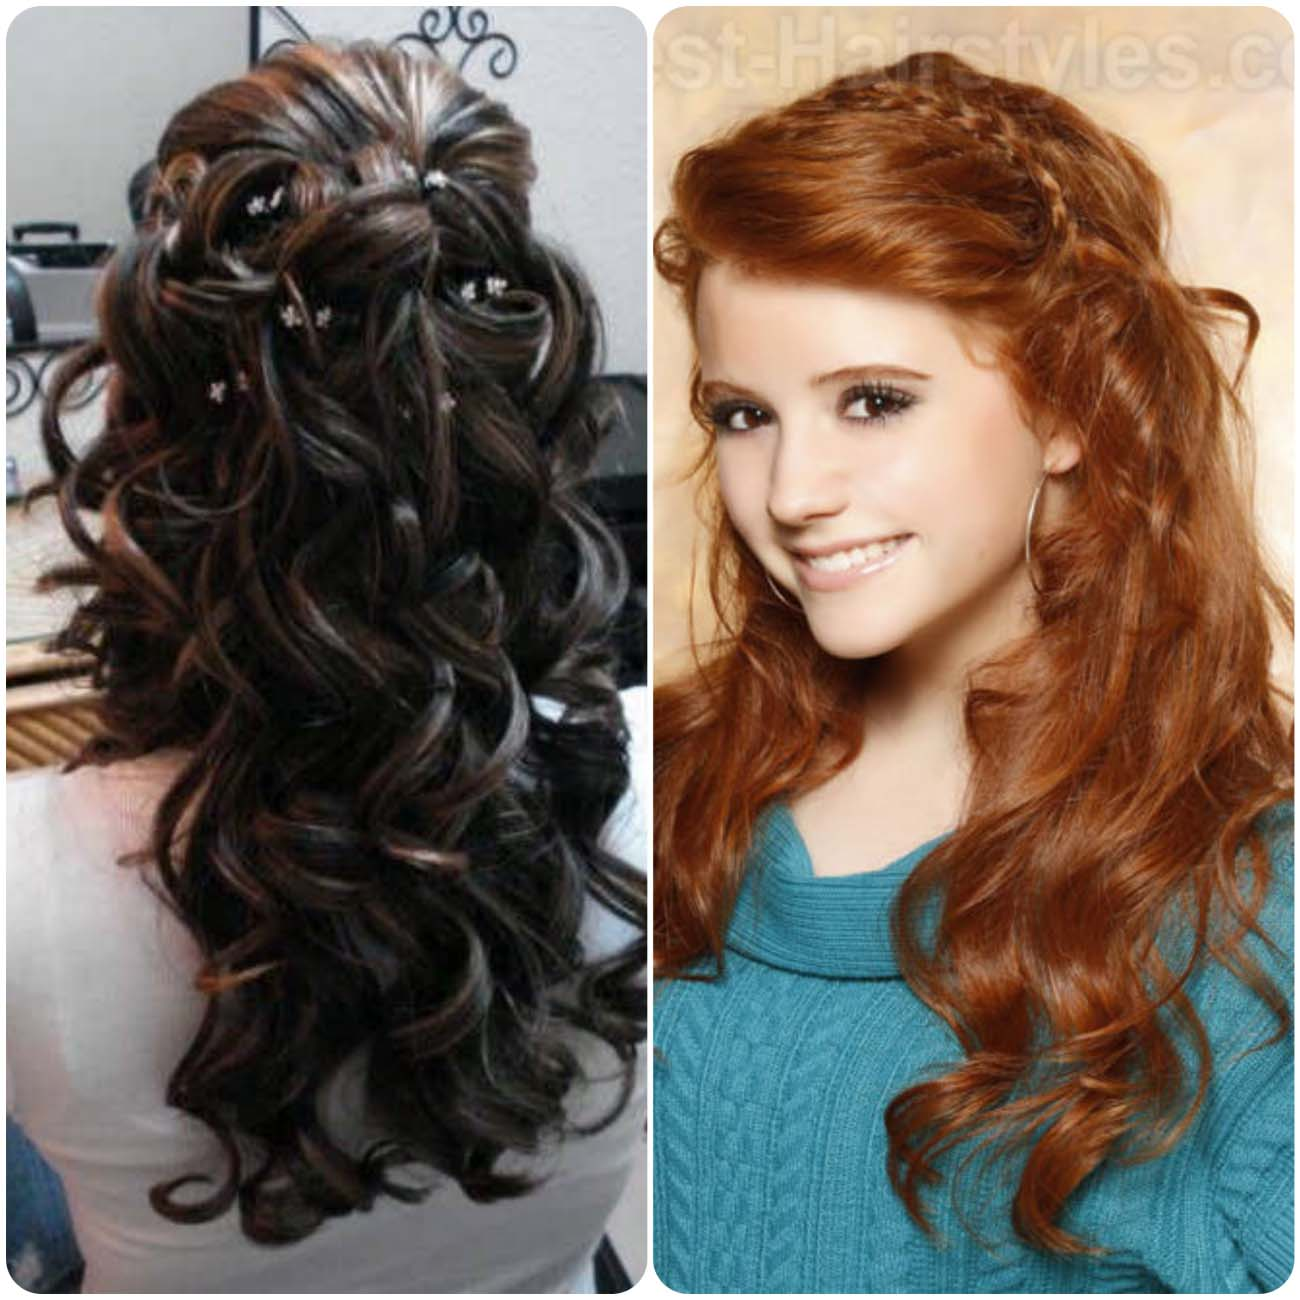 Open-curly-hairstyles-1-771x1b024_Fotor_Collage